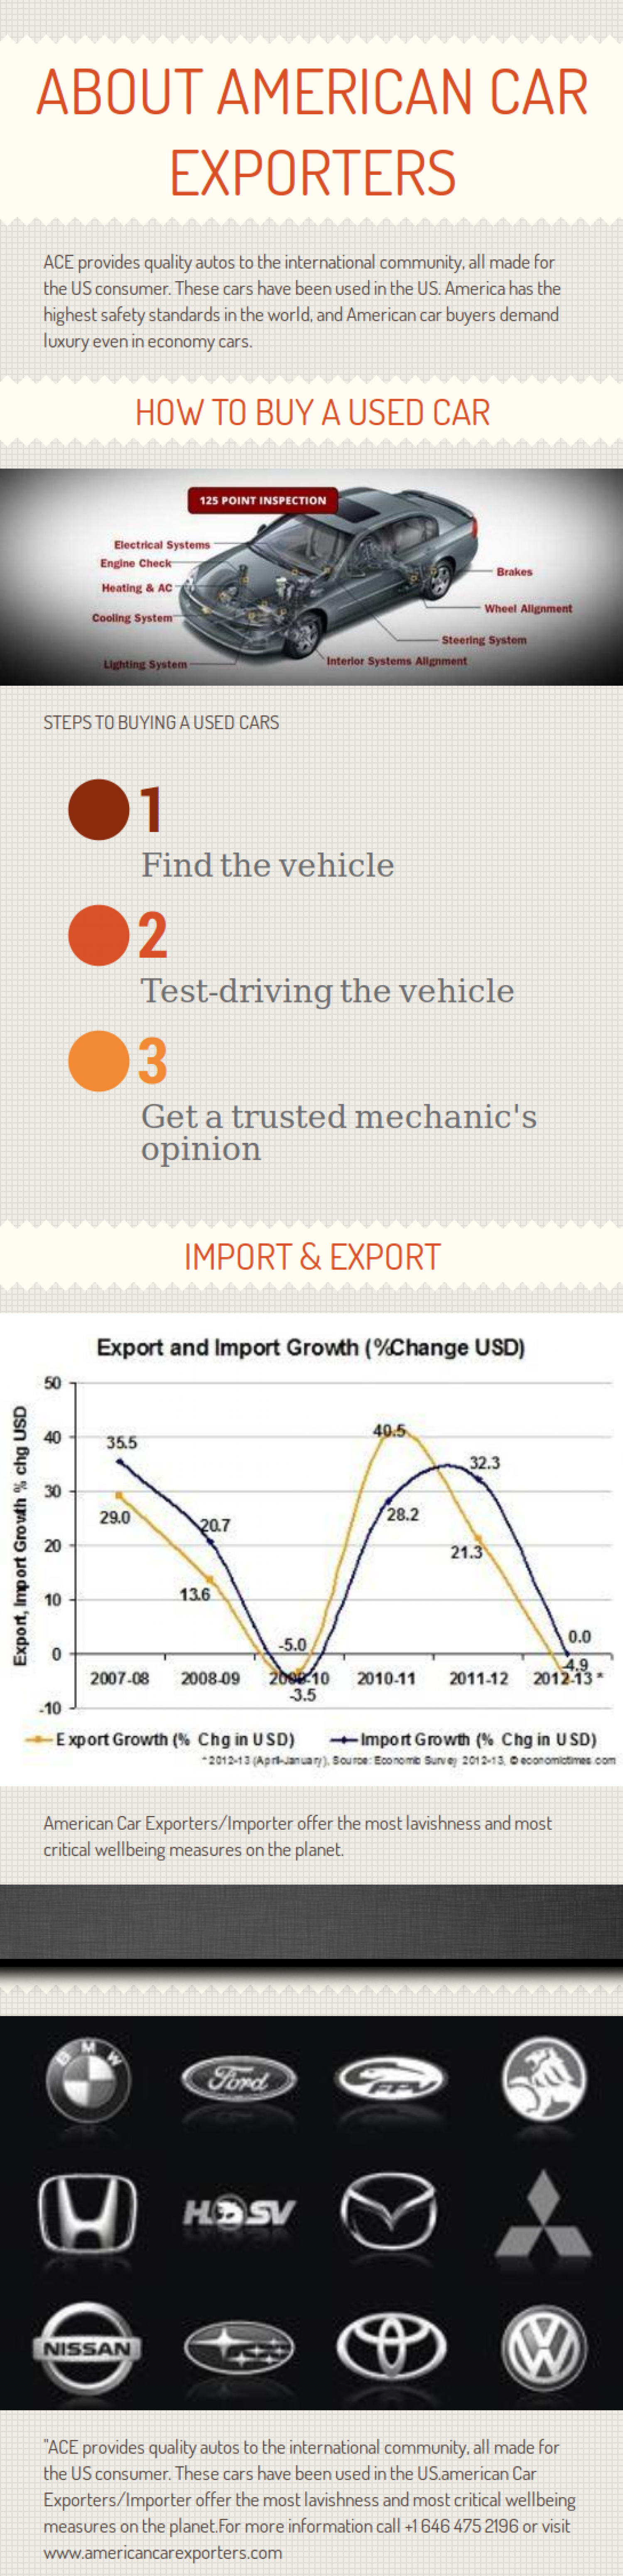 About American Car Exporters Infographic